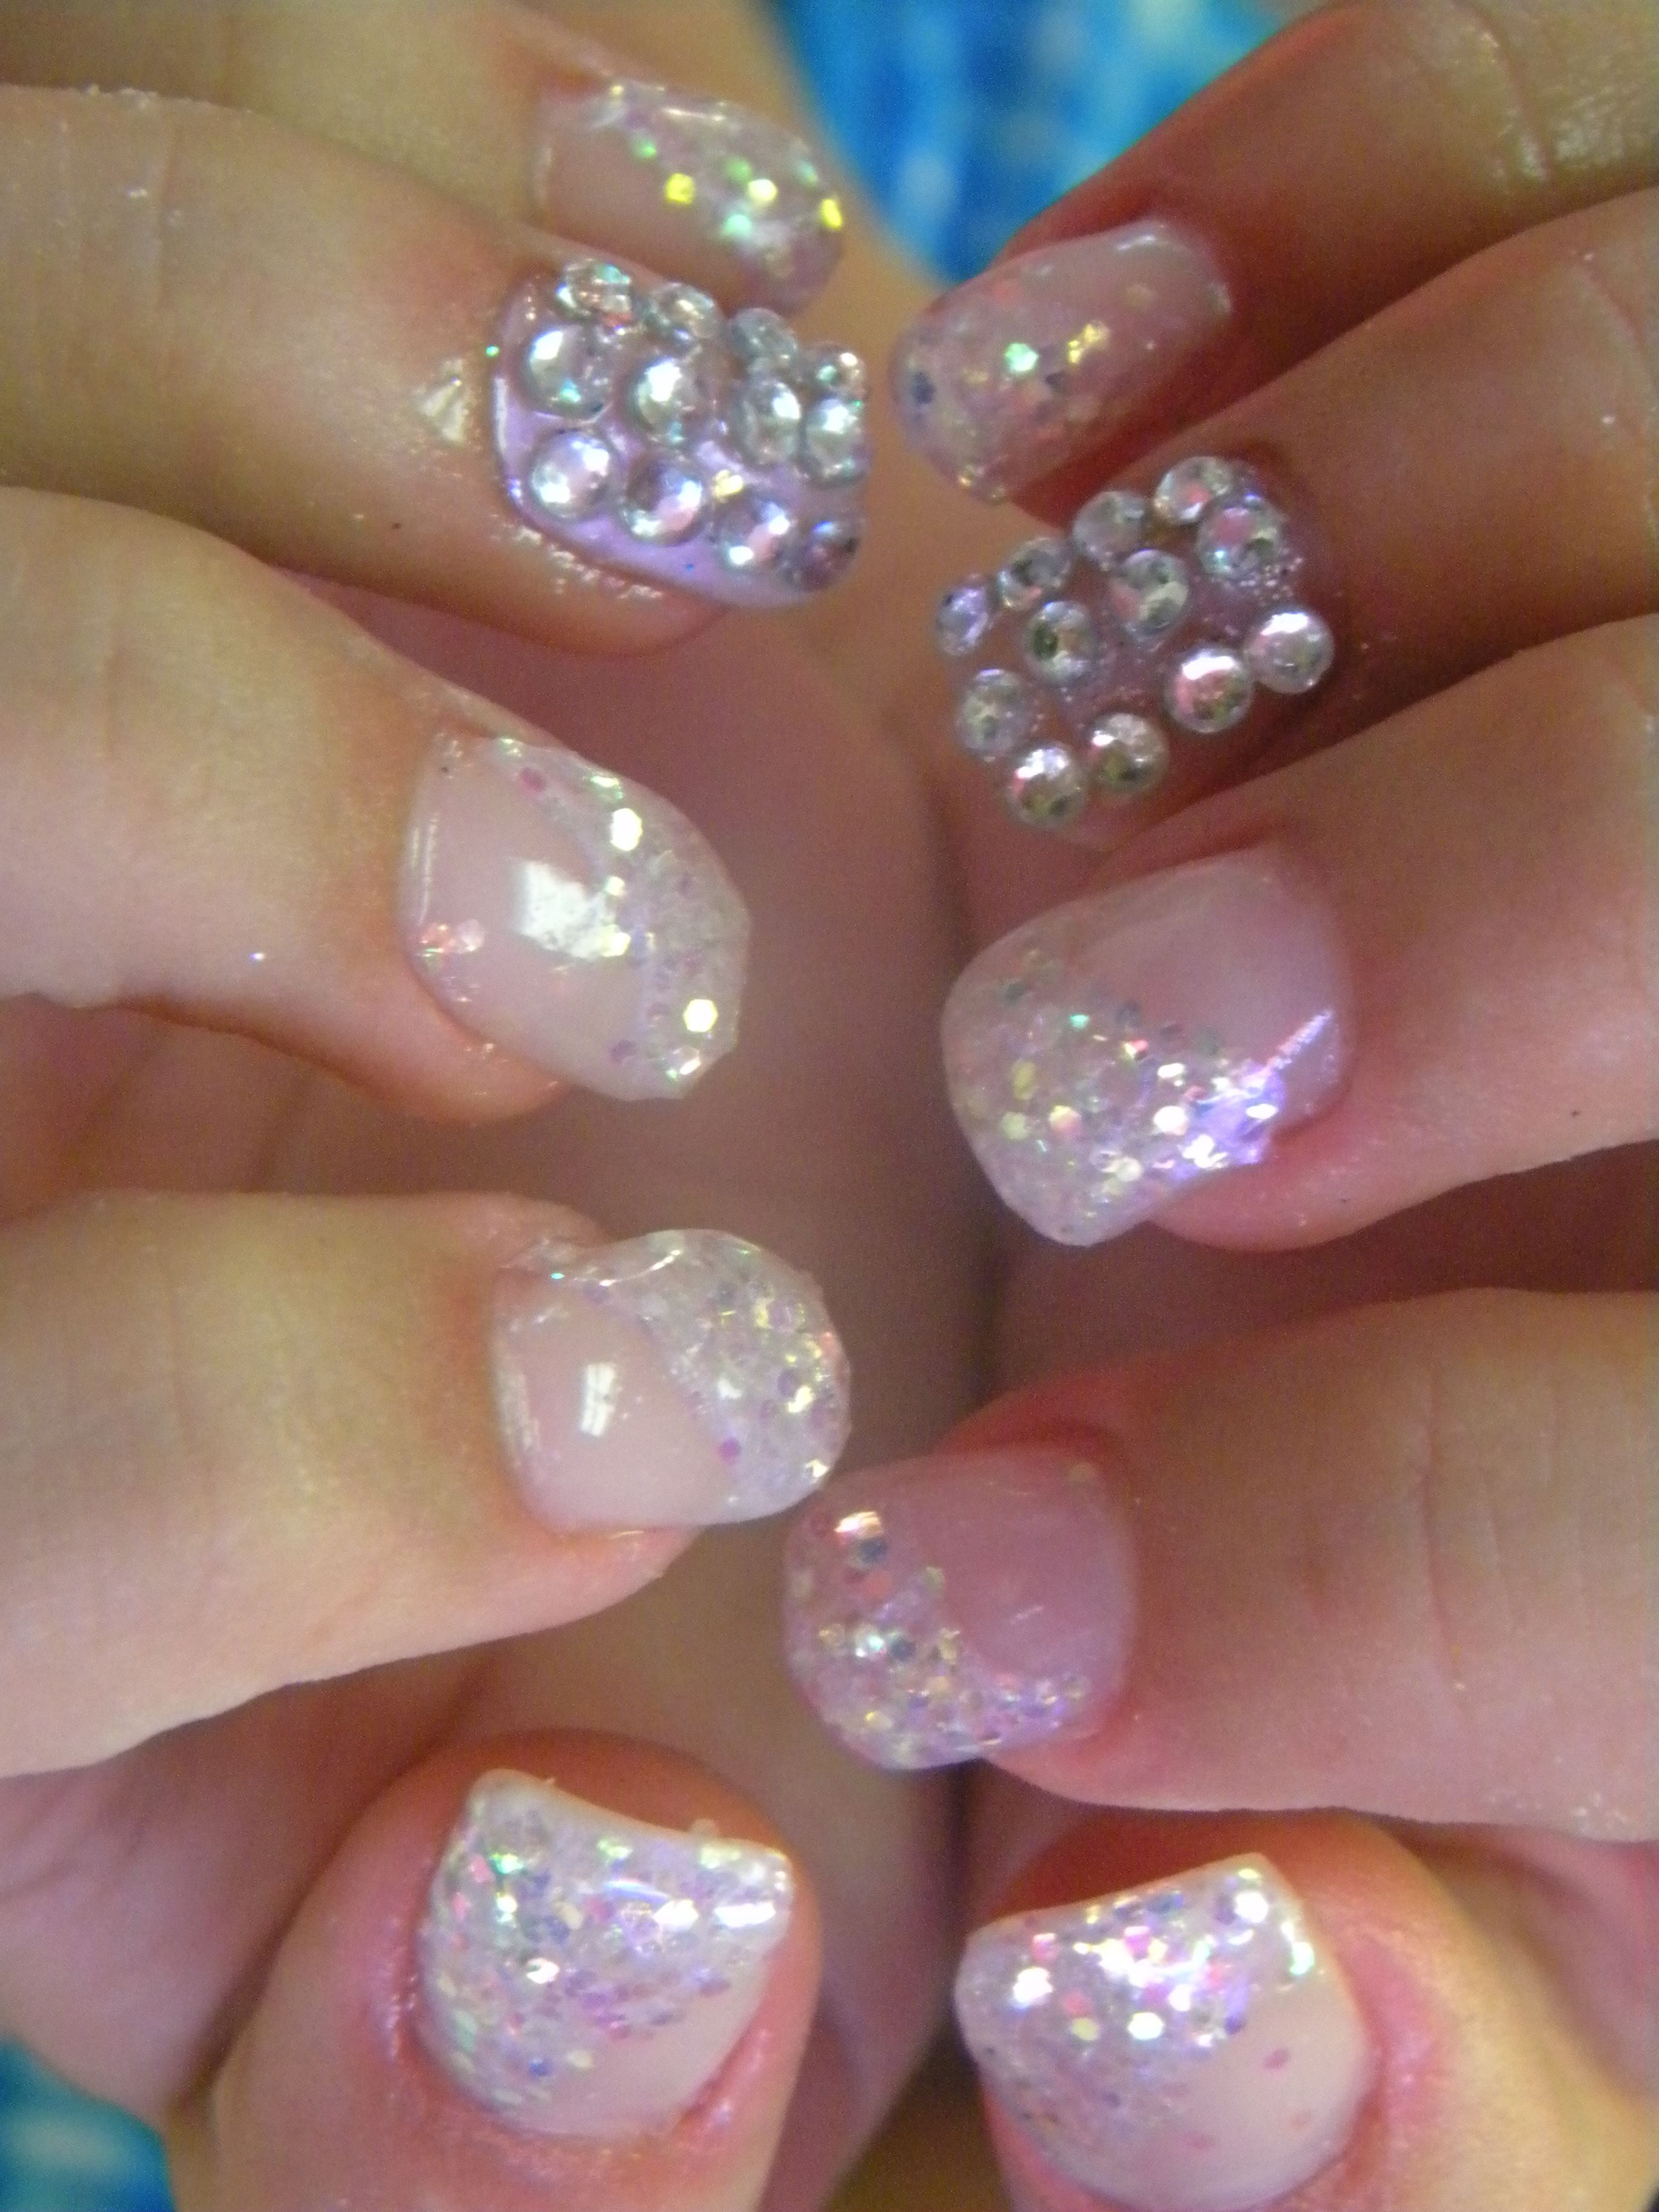 Nail Design Ideas 2015 amazing black cat nail art designs ideas classy nail 2015 nail art designs Nails For Prom 2015 Prety Helpful Nail Ideas Tips For Prom